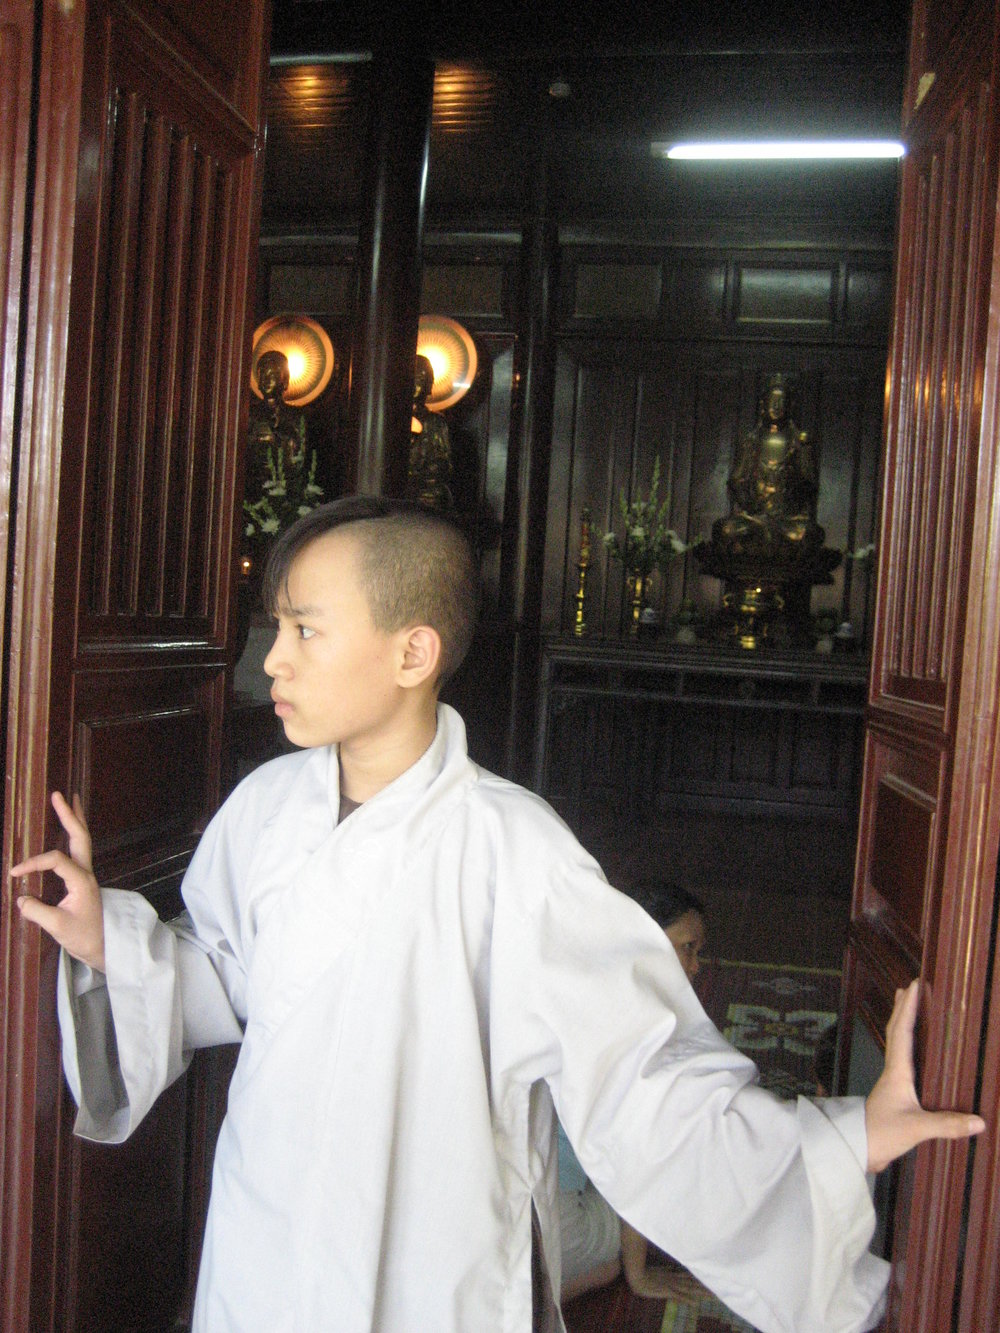 A monk in training, and the awful haircut that is required.